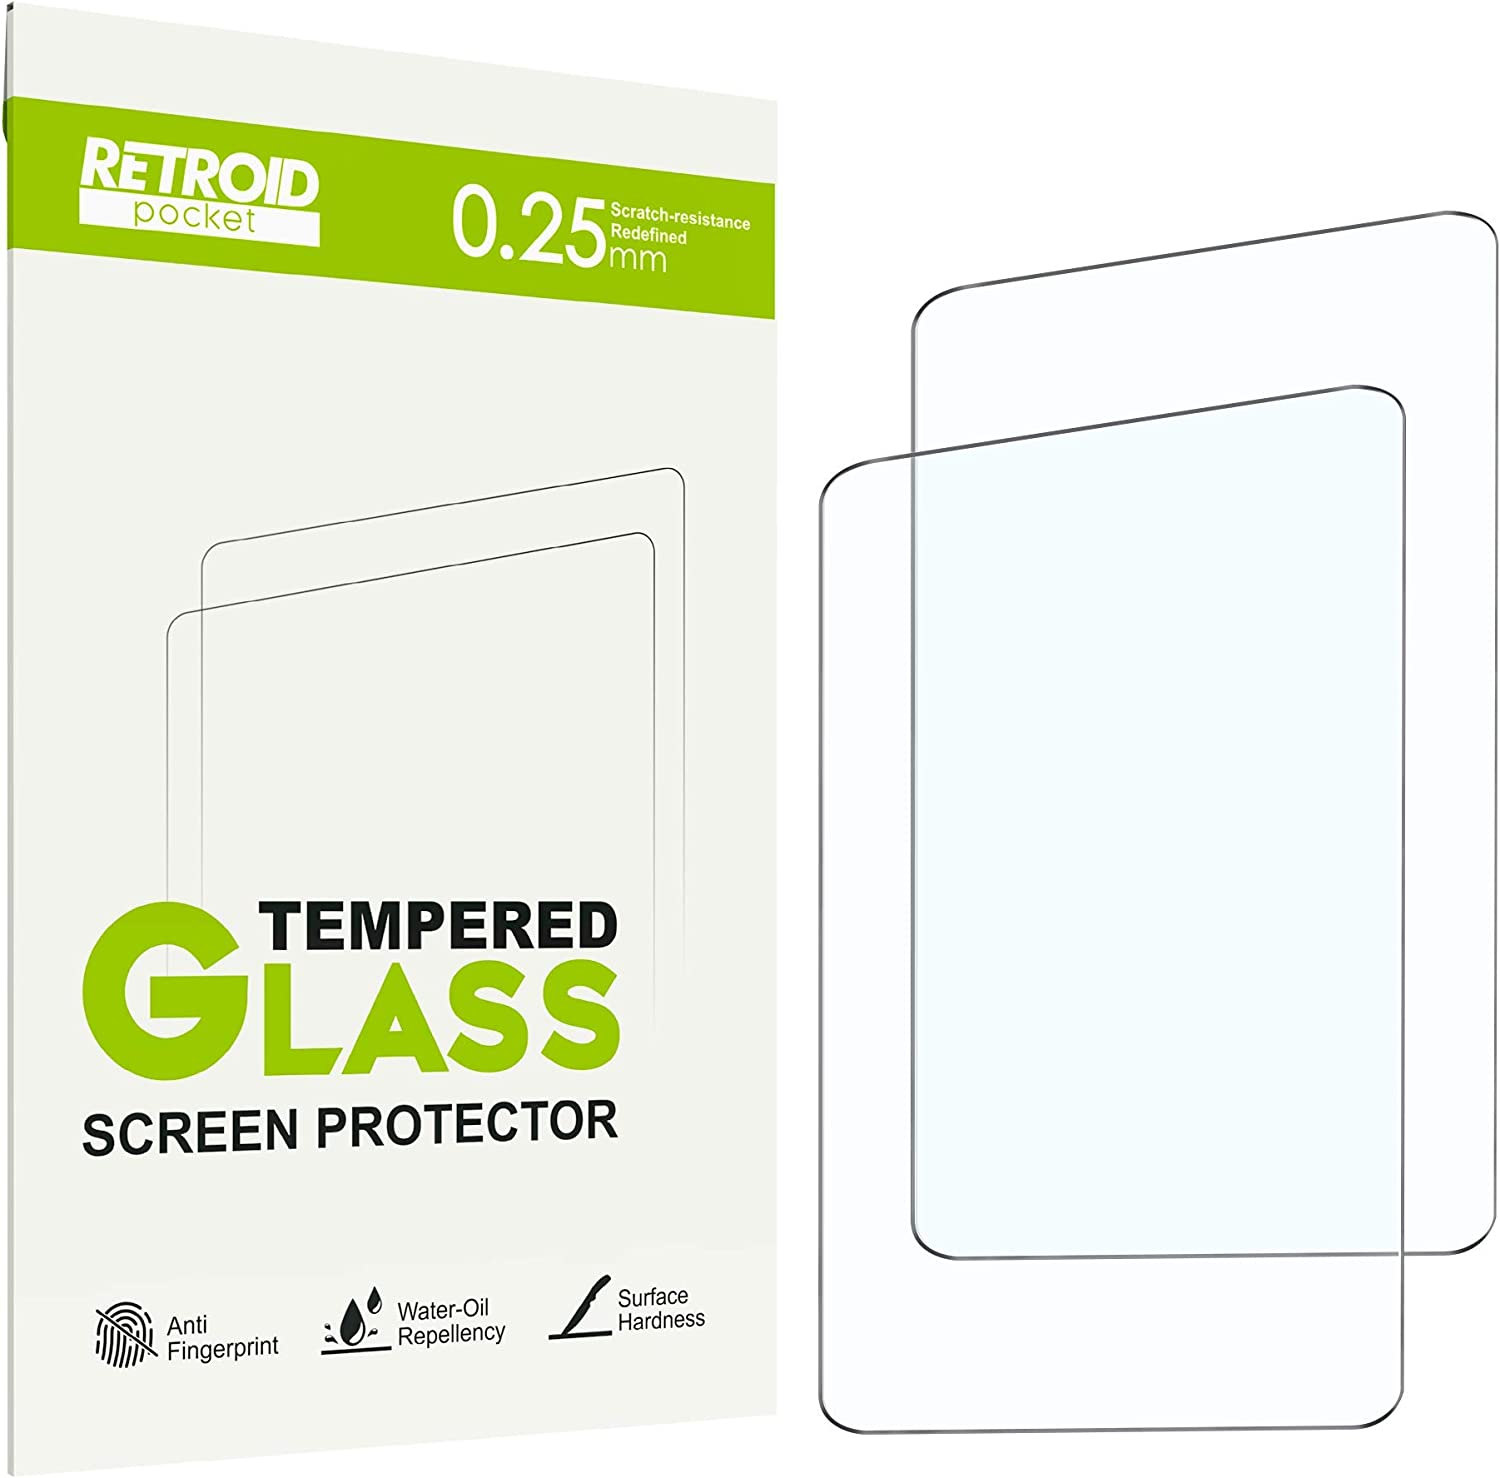 Retroid Pocket 2 Screen Protectors[2-Pack], Tempered Glass Screen Protector Specially Designed for Retroid Pocket 2 Android Handheld Game Console Series